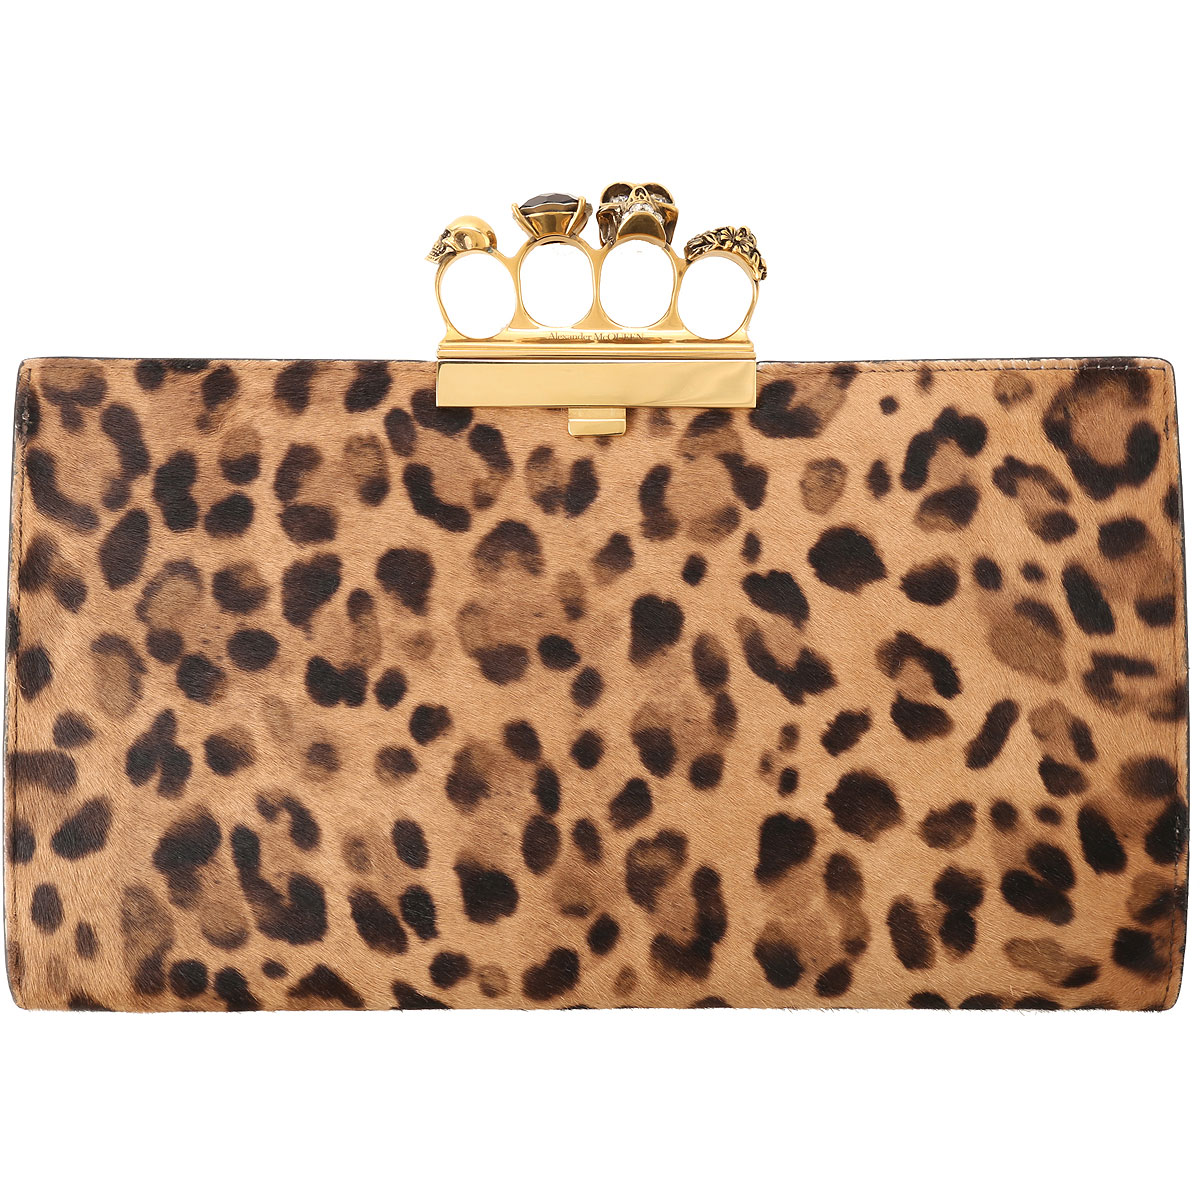 Alexander McQueen Clutch Bag On Sale, Leopard, Fur, 2019